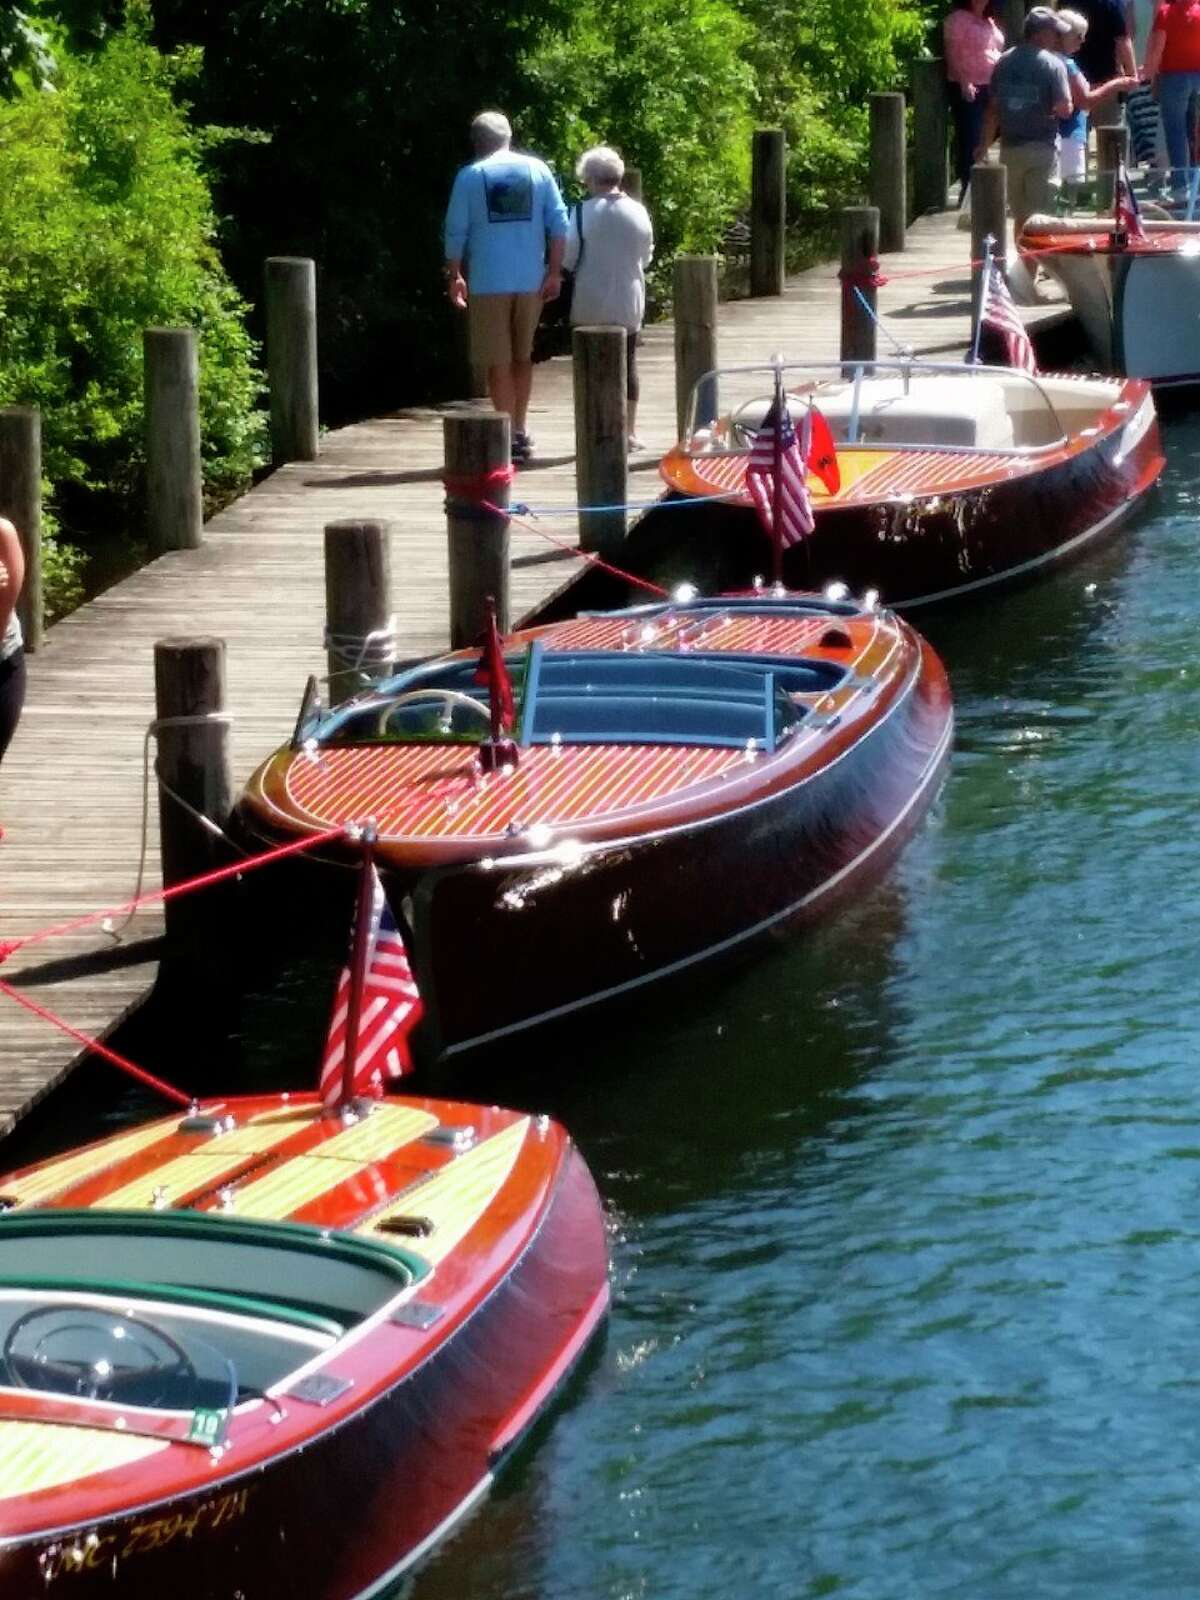 The 33rd annual Boats on the Boardwalk will take place Saturday, Aug. 7 in Travers City. (Submitted photo)